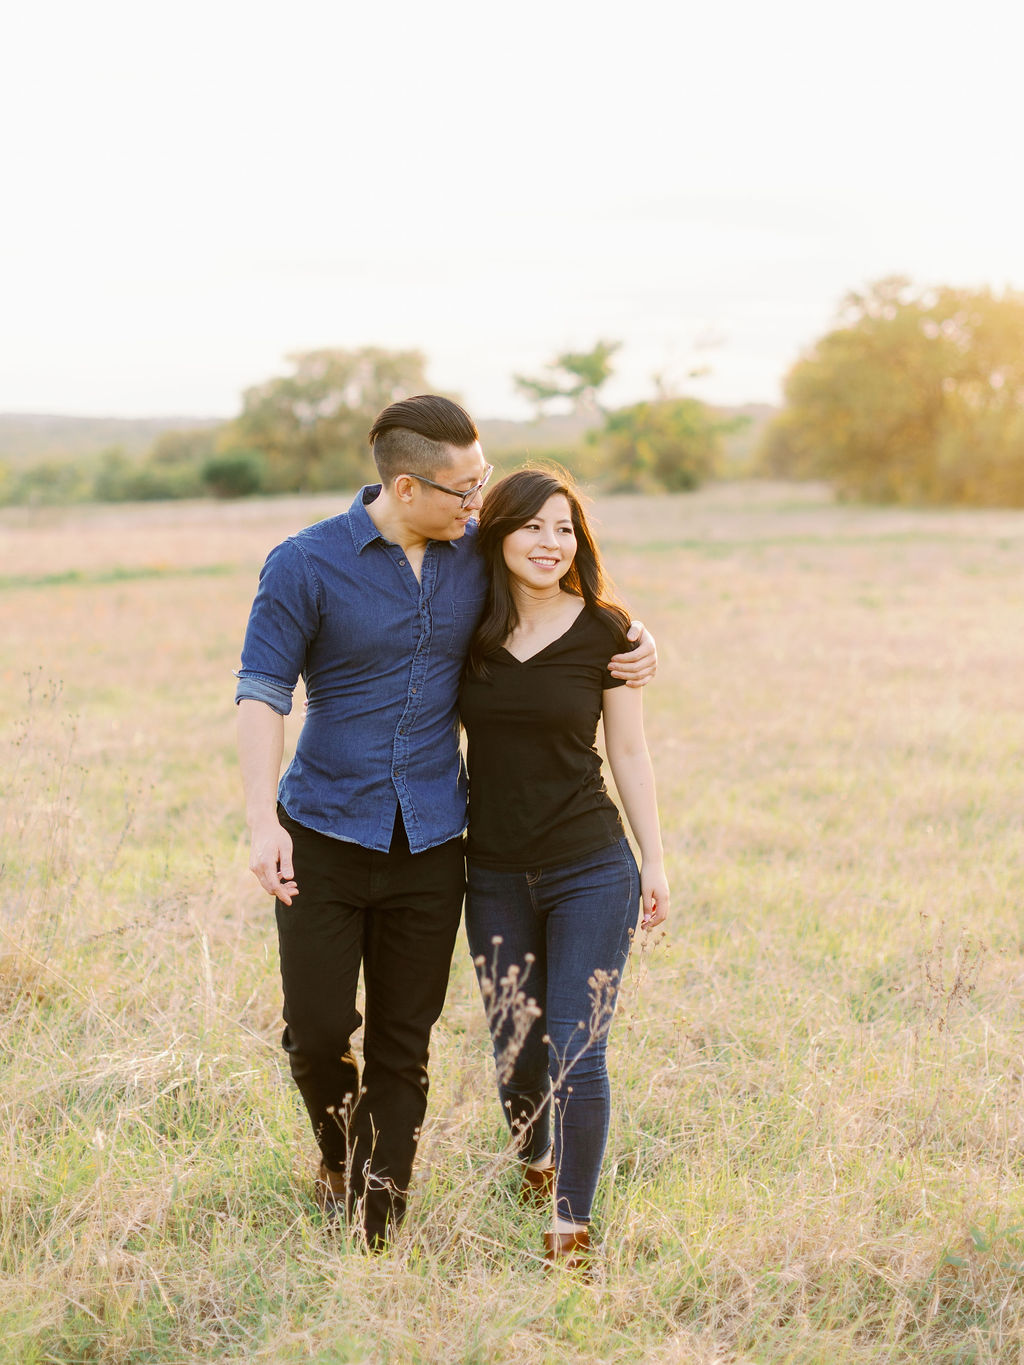 Austin-Film-Wedding-Photographer-Engagement-Session-Fun-adventure-outdoor-fine-art-28.jpg